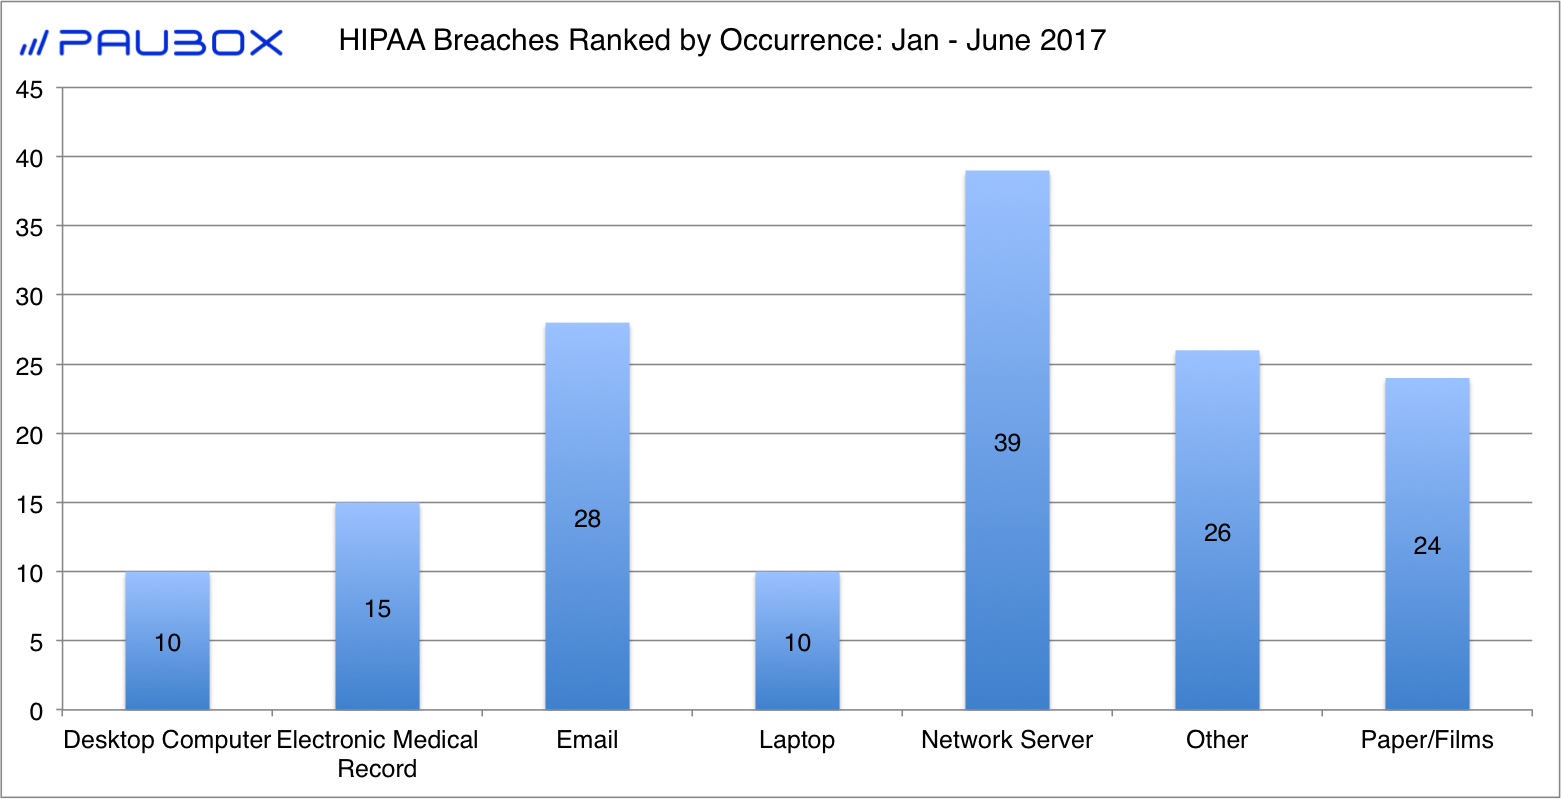 HIPAA Breaches by Occurrence: Jan - June 2017 - Paubox